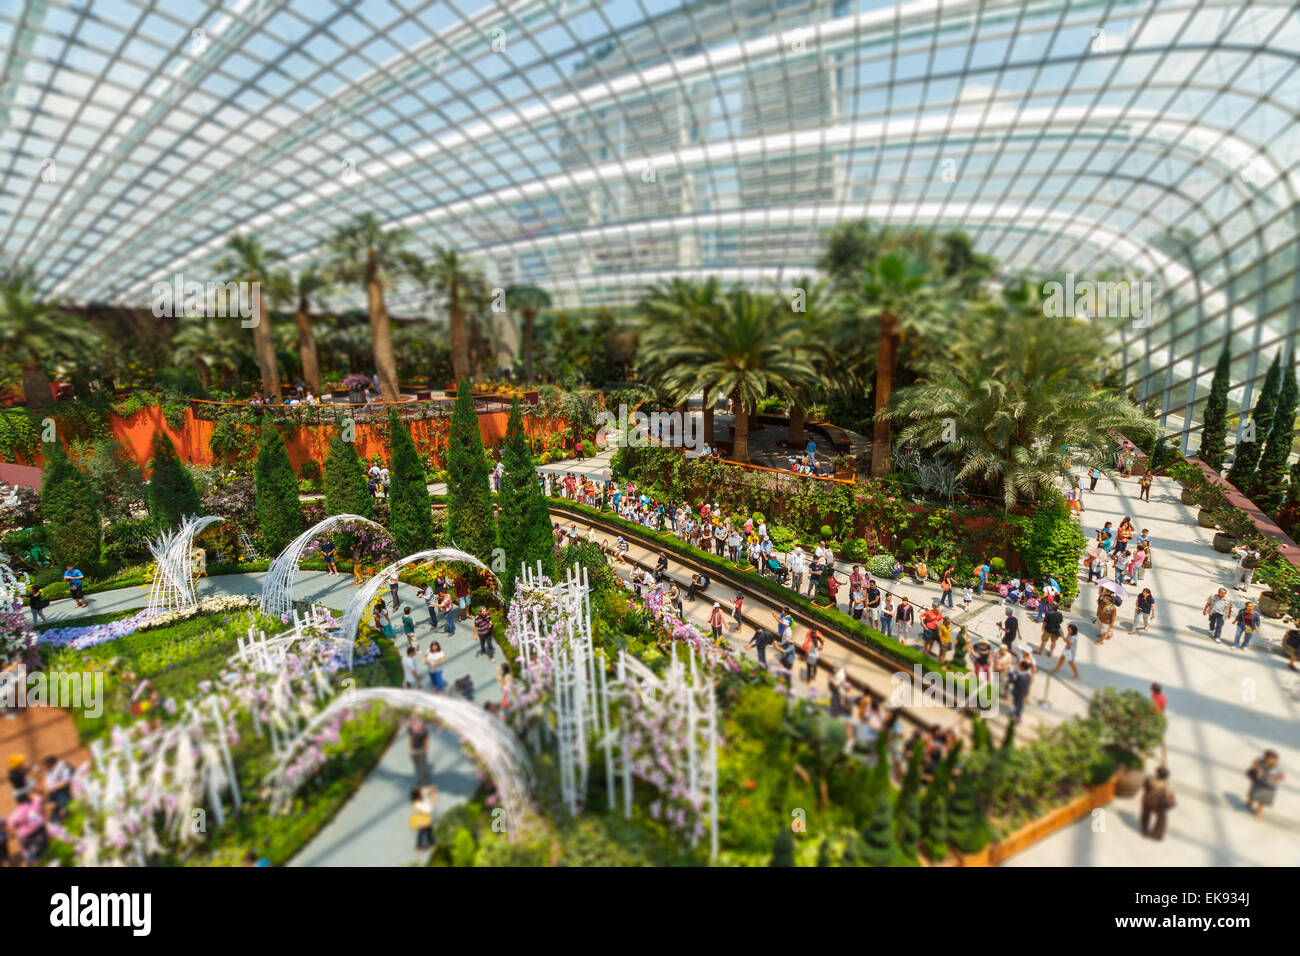 Flower Dome conservatory.  Gardens by the Bay. Singapore, Asia. - Stock Image